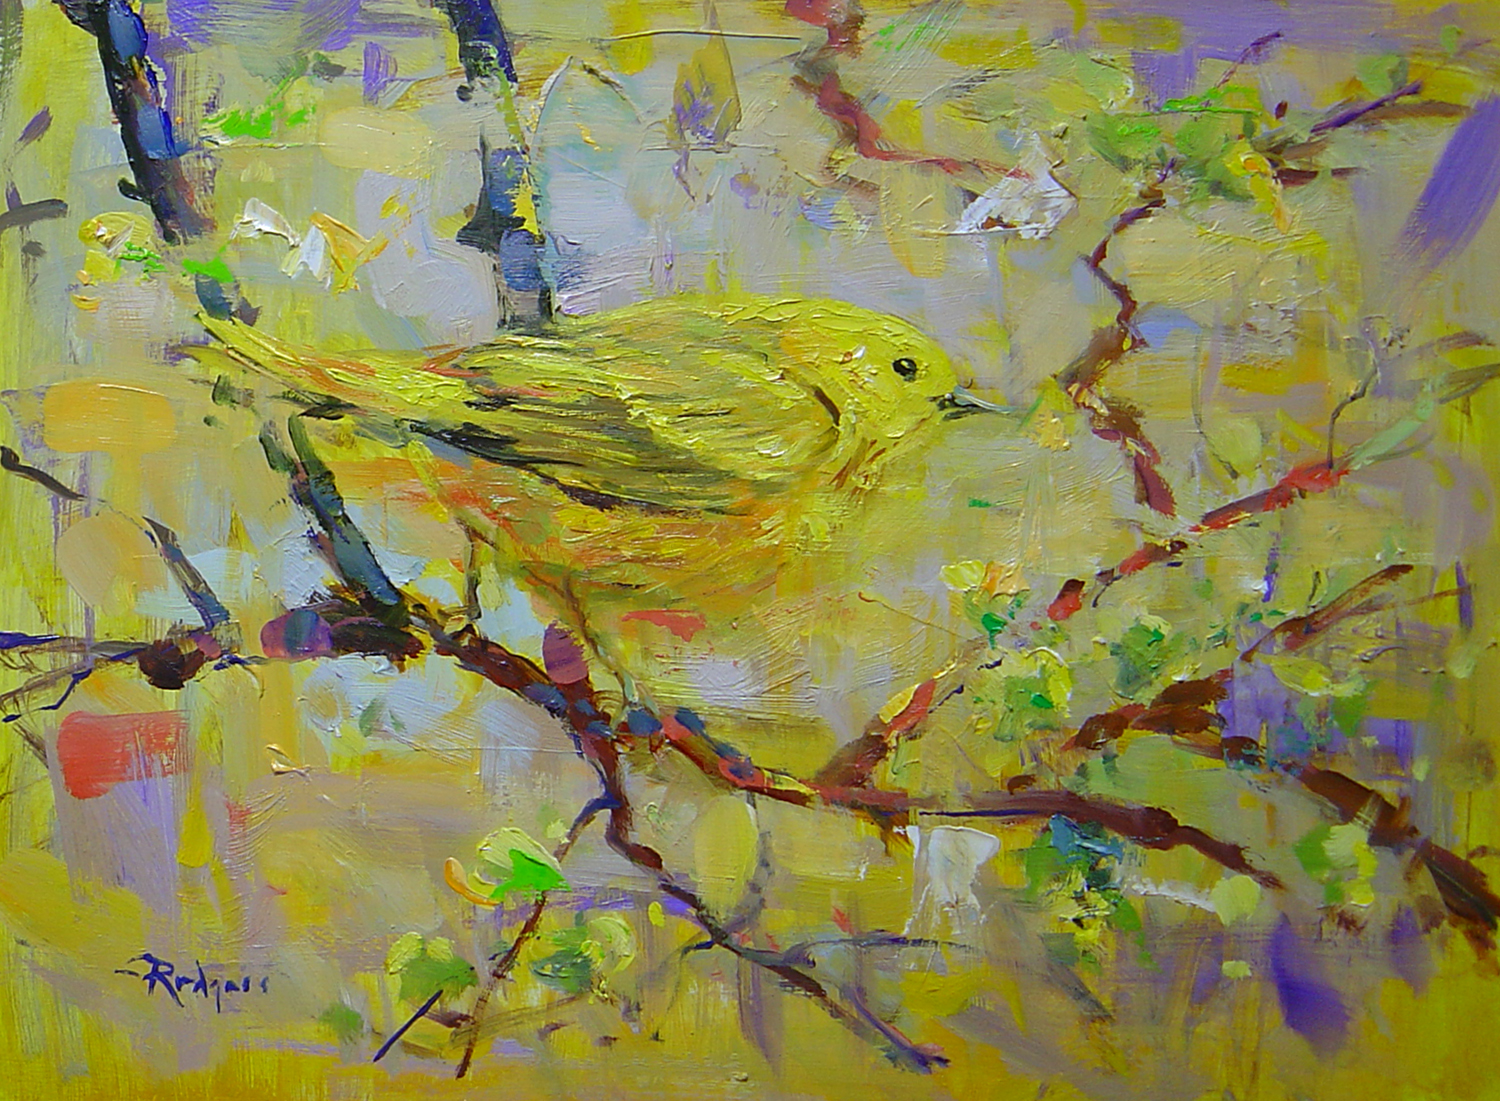 WARBLER IN SPRING by Jim Rodgers- 12 x 16 in., o/b •$2,500